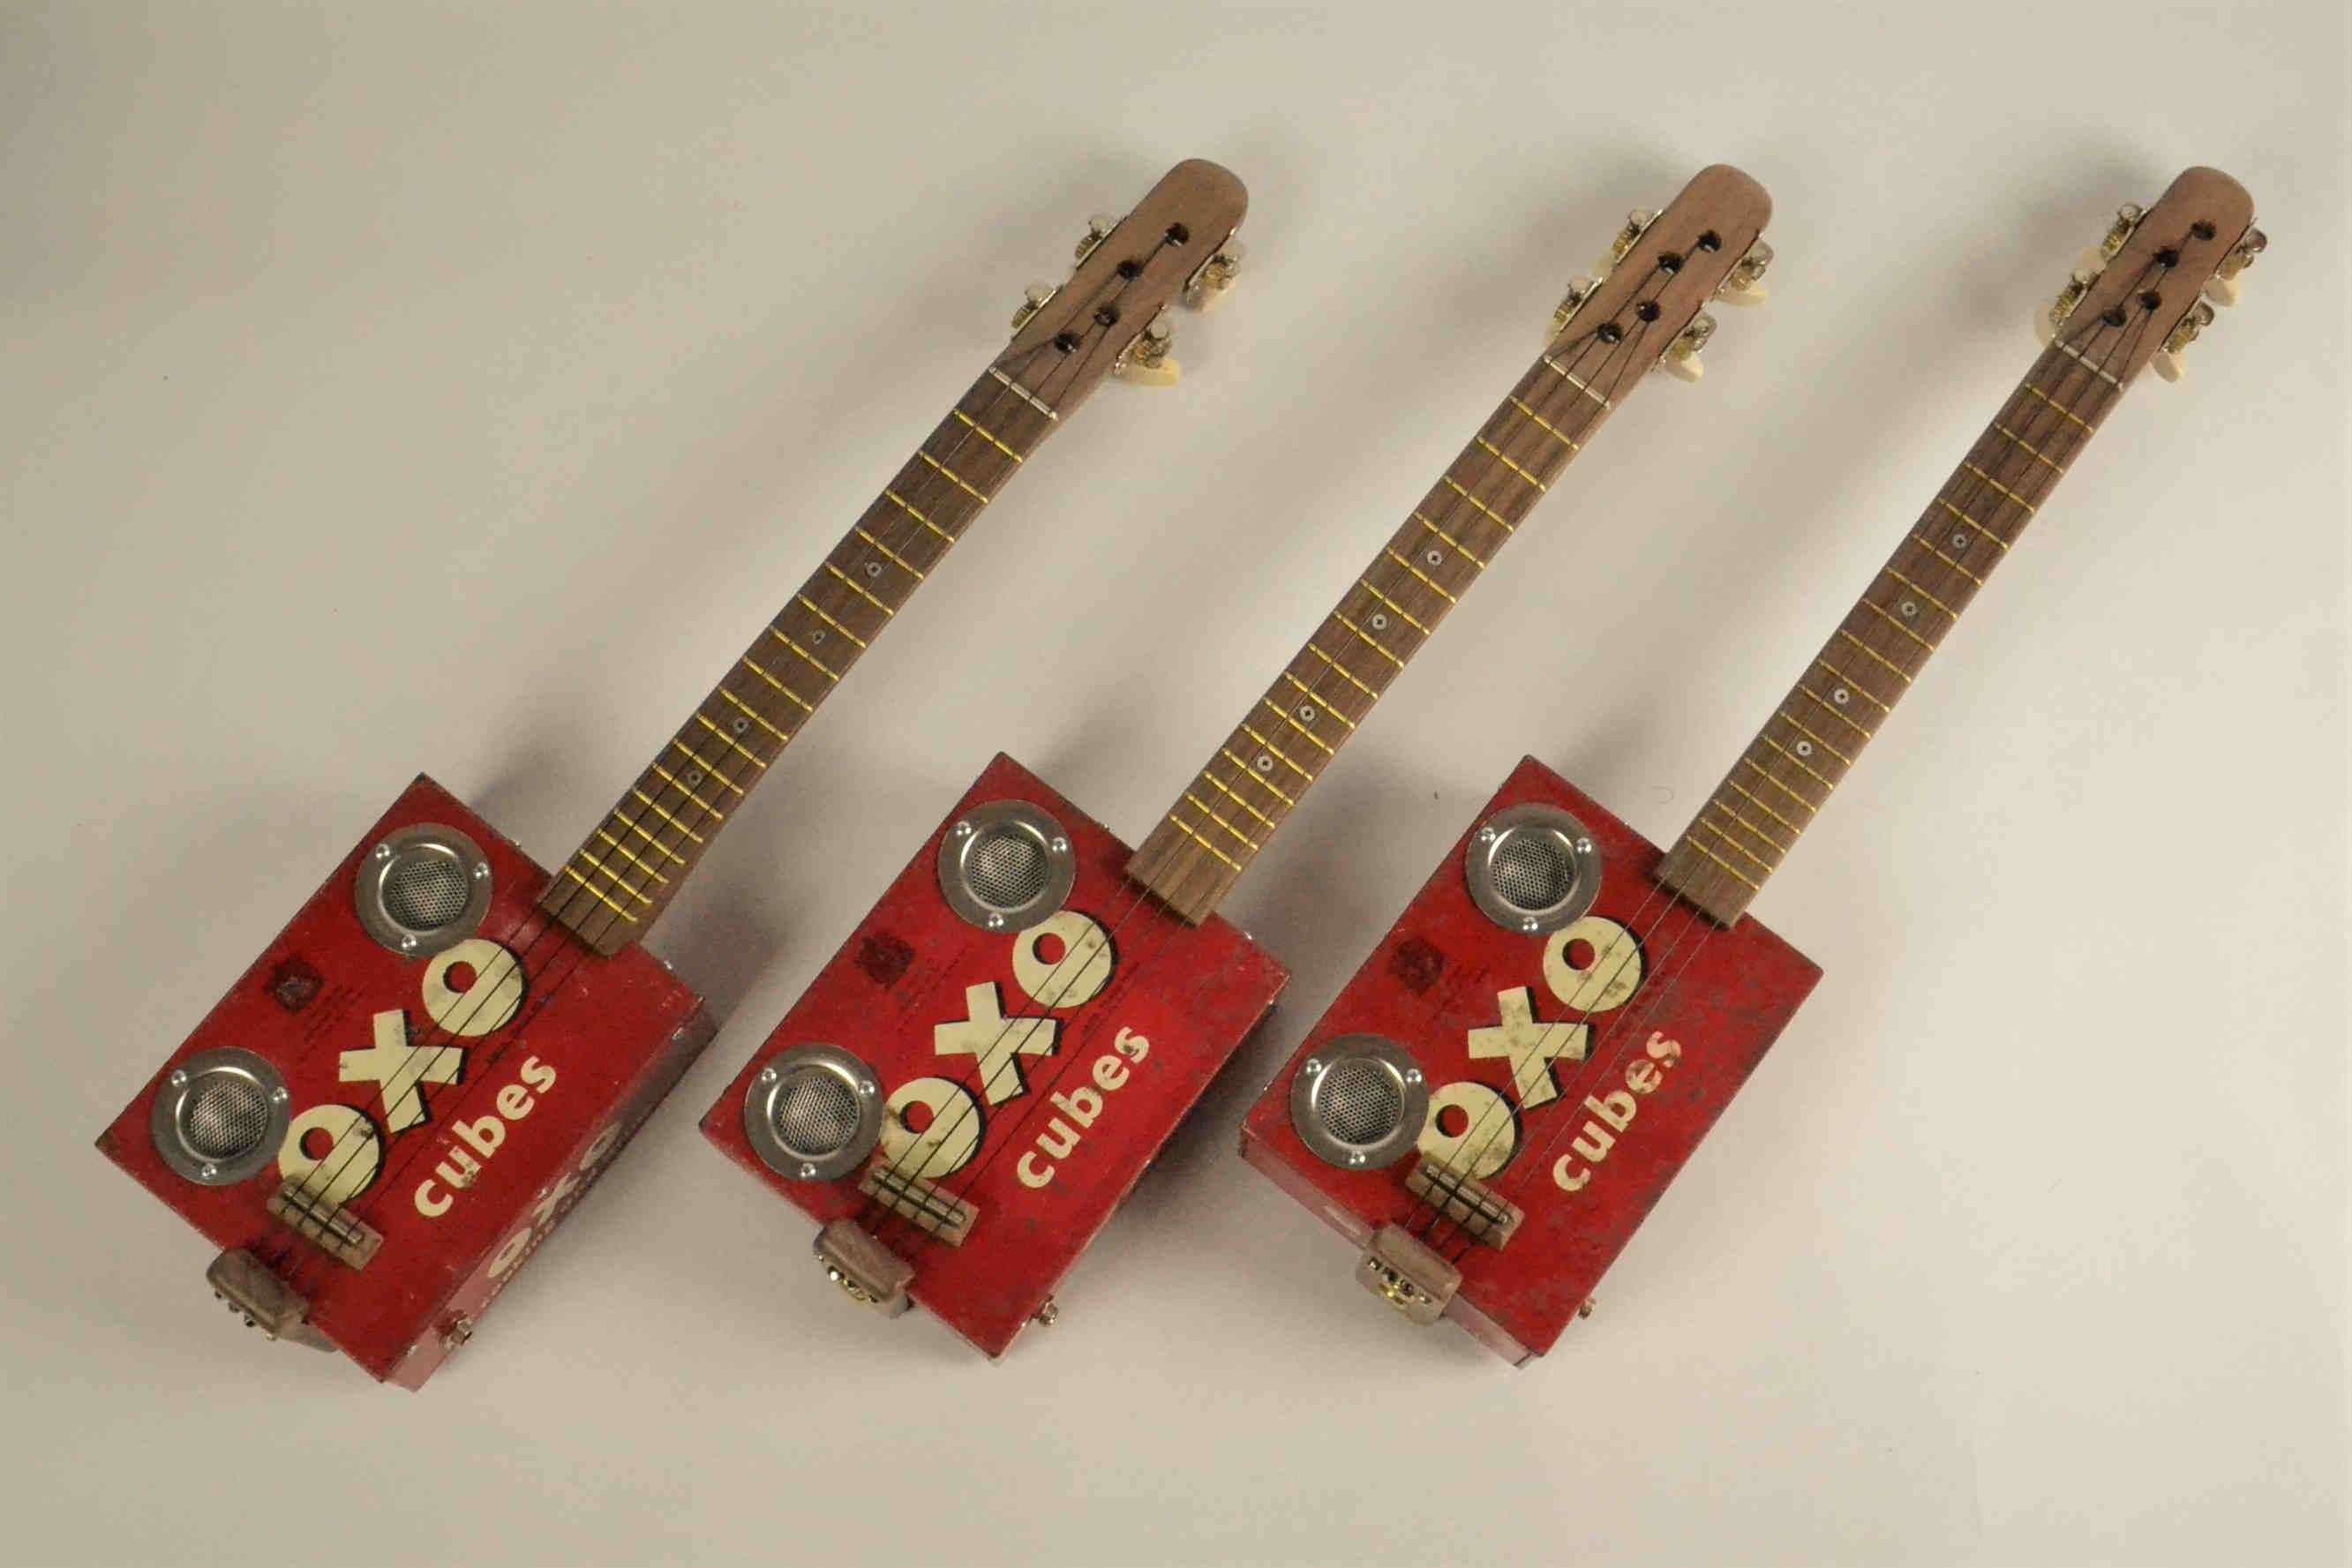 The Oxolele Tin Ukulele